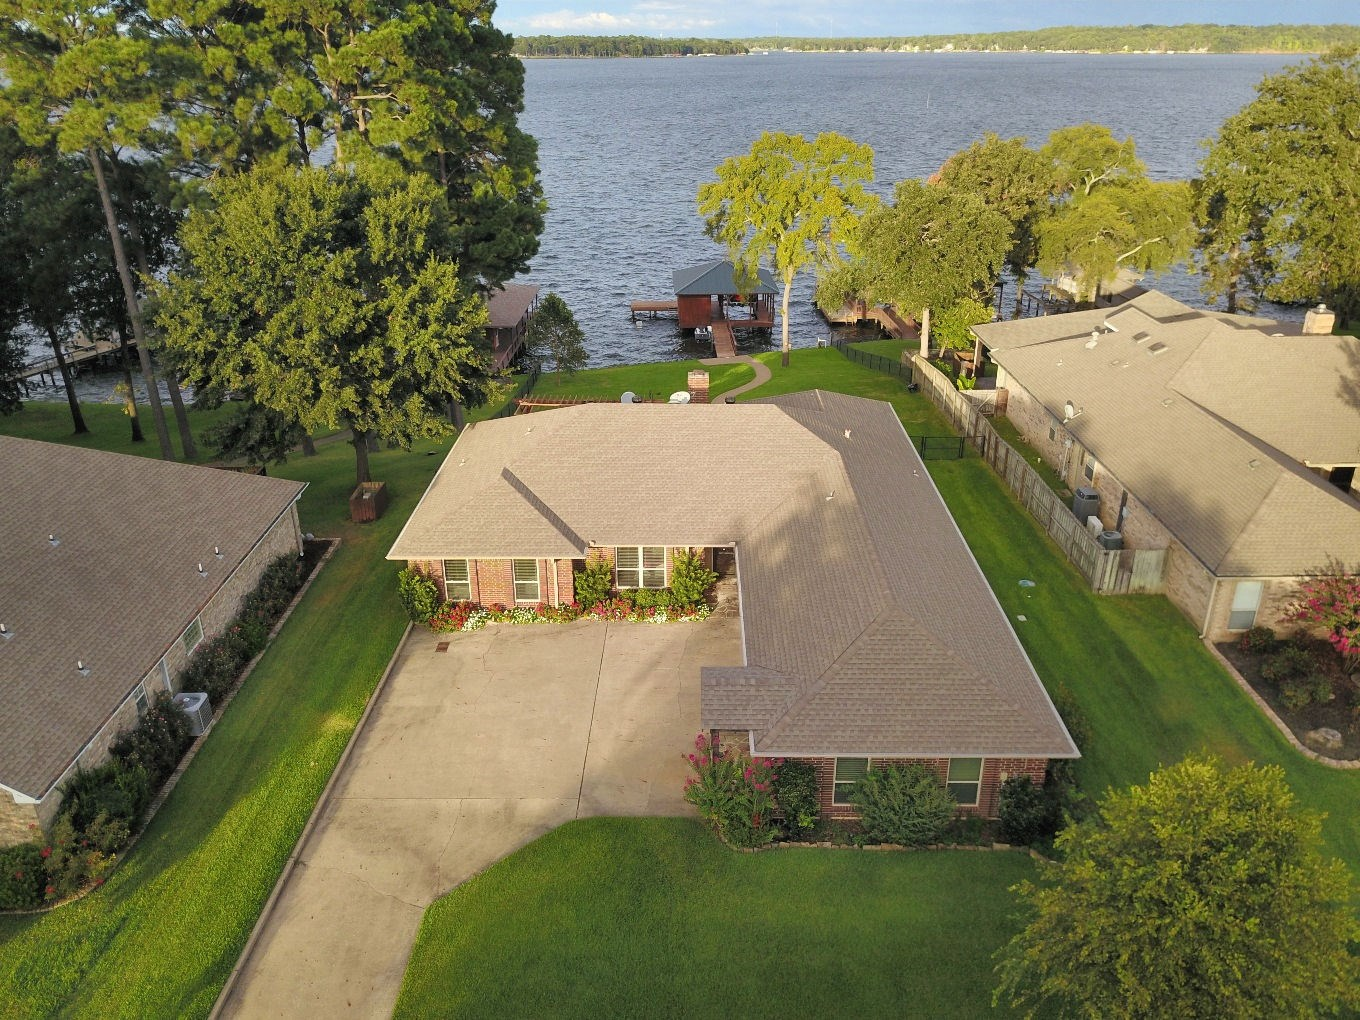 LAKE PALESTINE WATERFRONT HOME FOR SALE IN GATED COMMUNITY